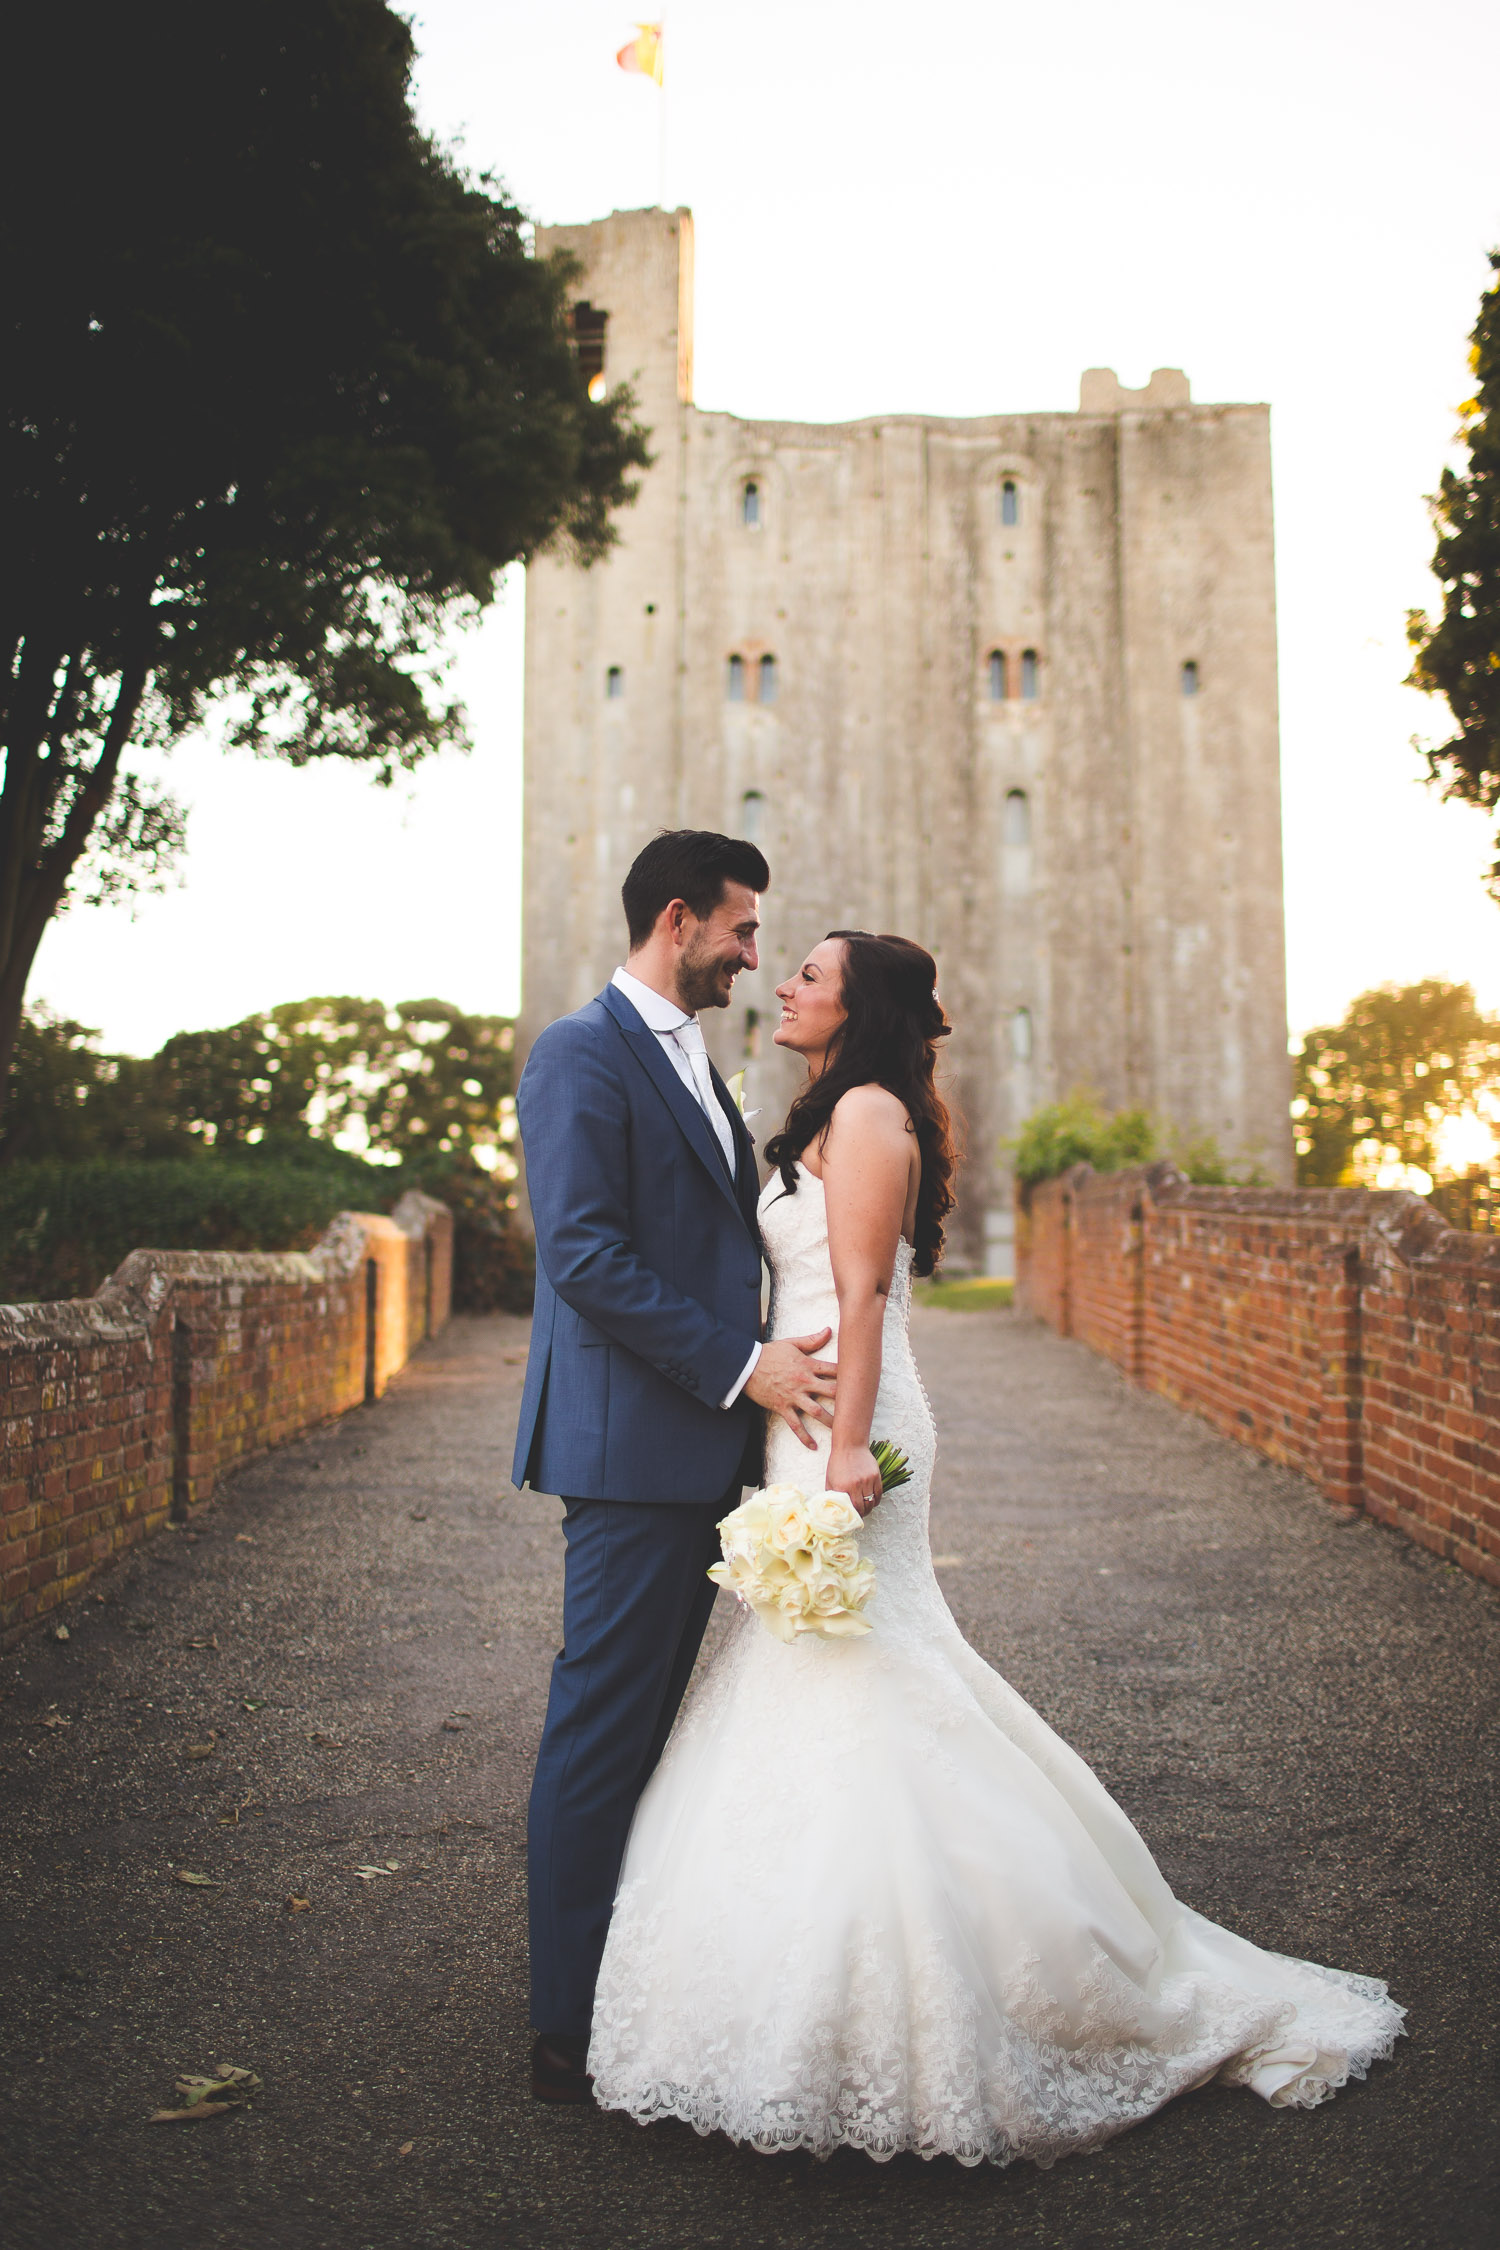 Surrey Wedding Photographer Hedingham Castle090.jpg